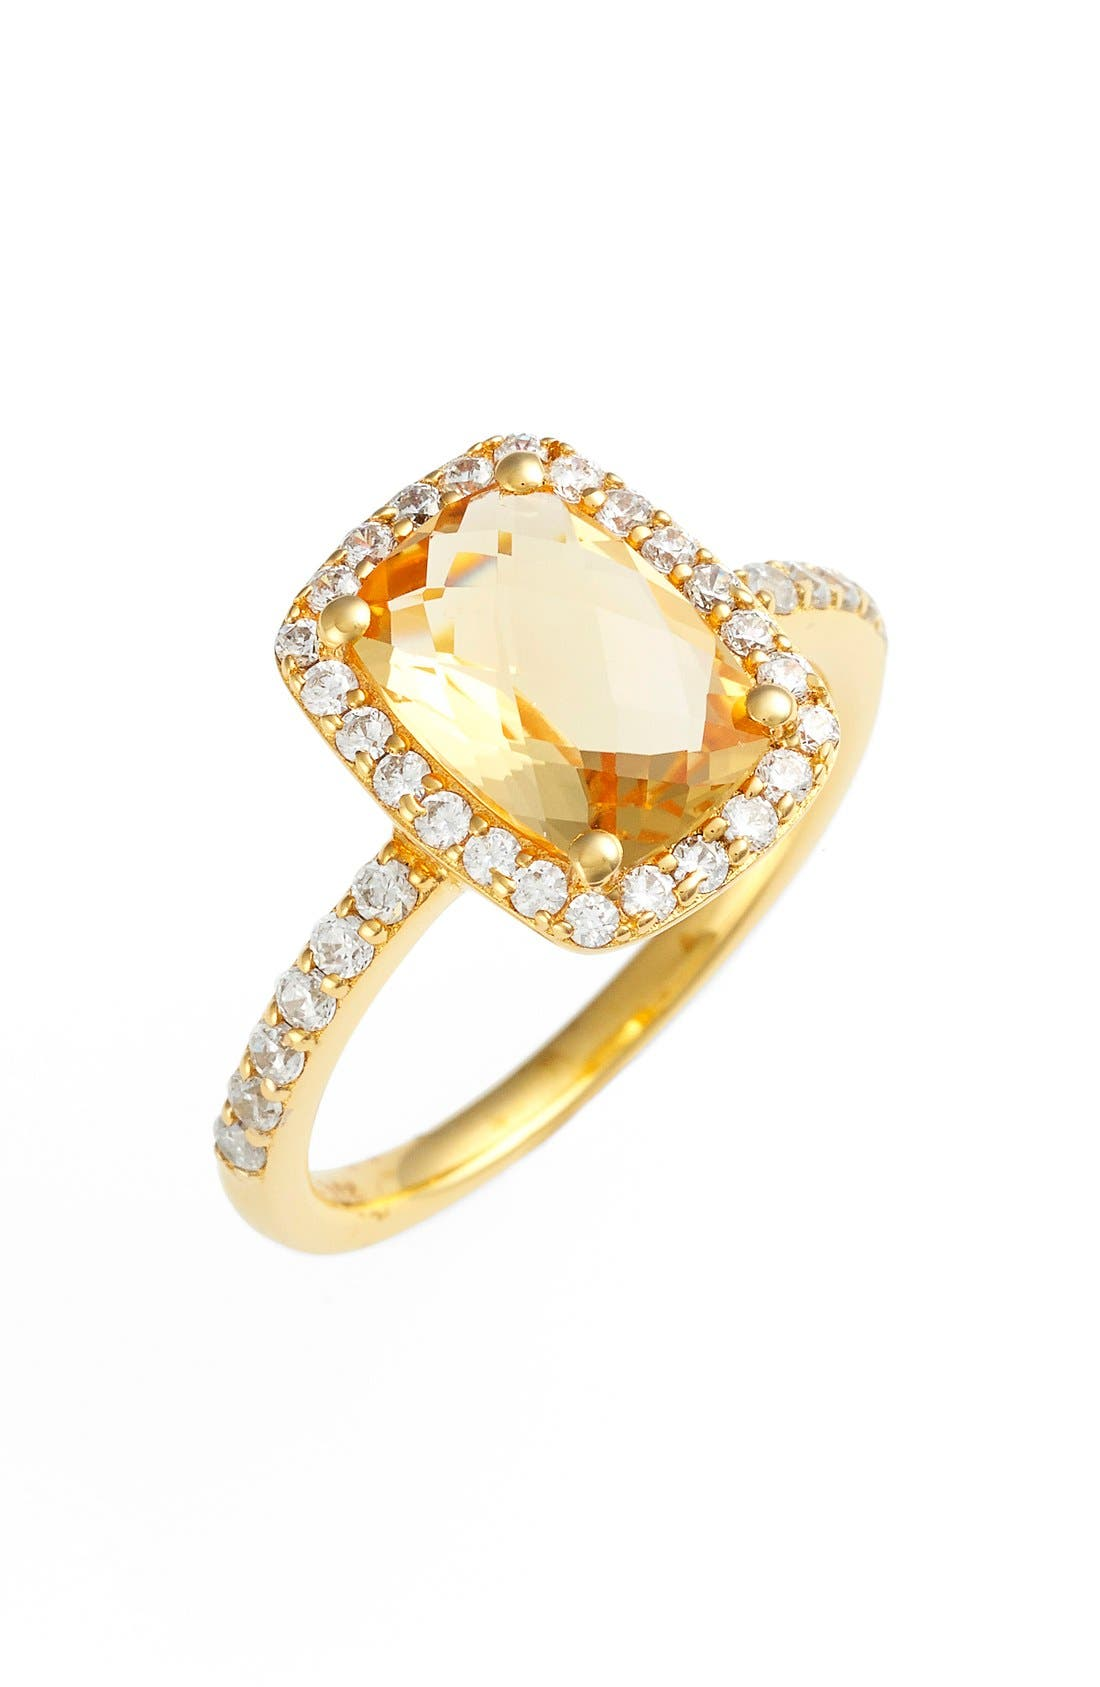 Main Image - Lafonn 'Aria' Rectangle Cushion Cut Ring